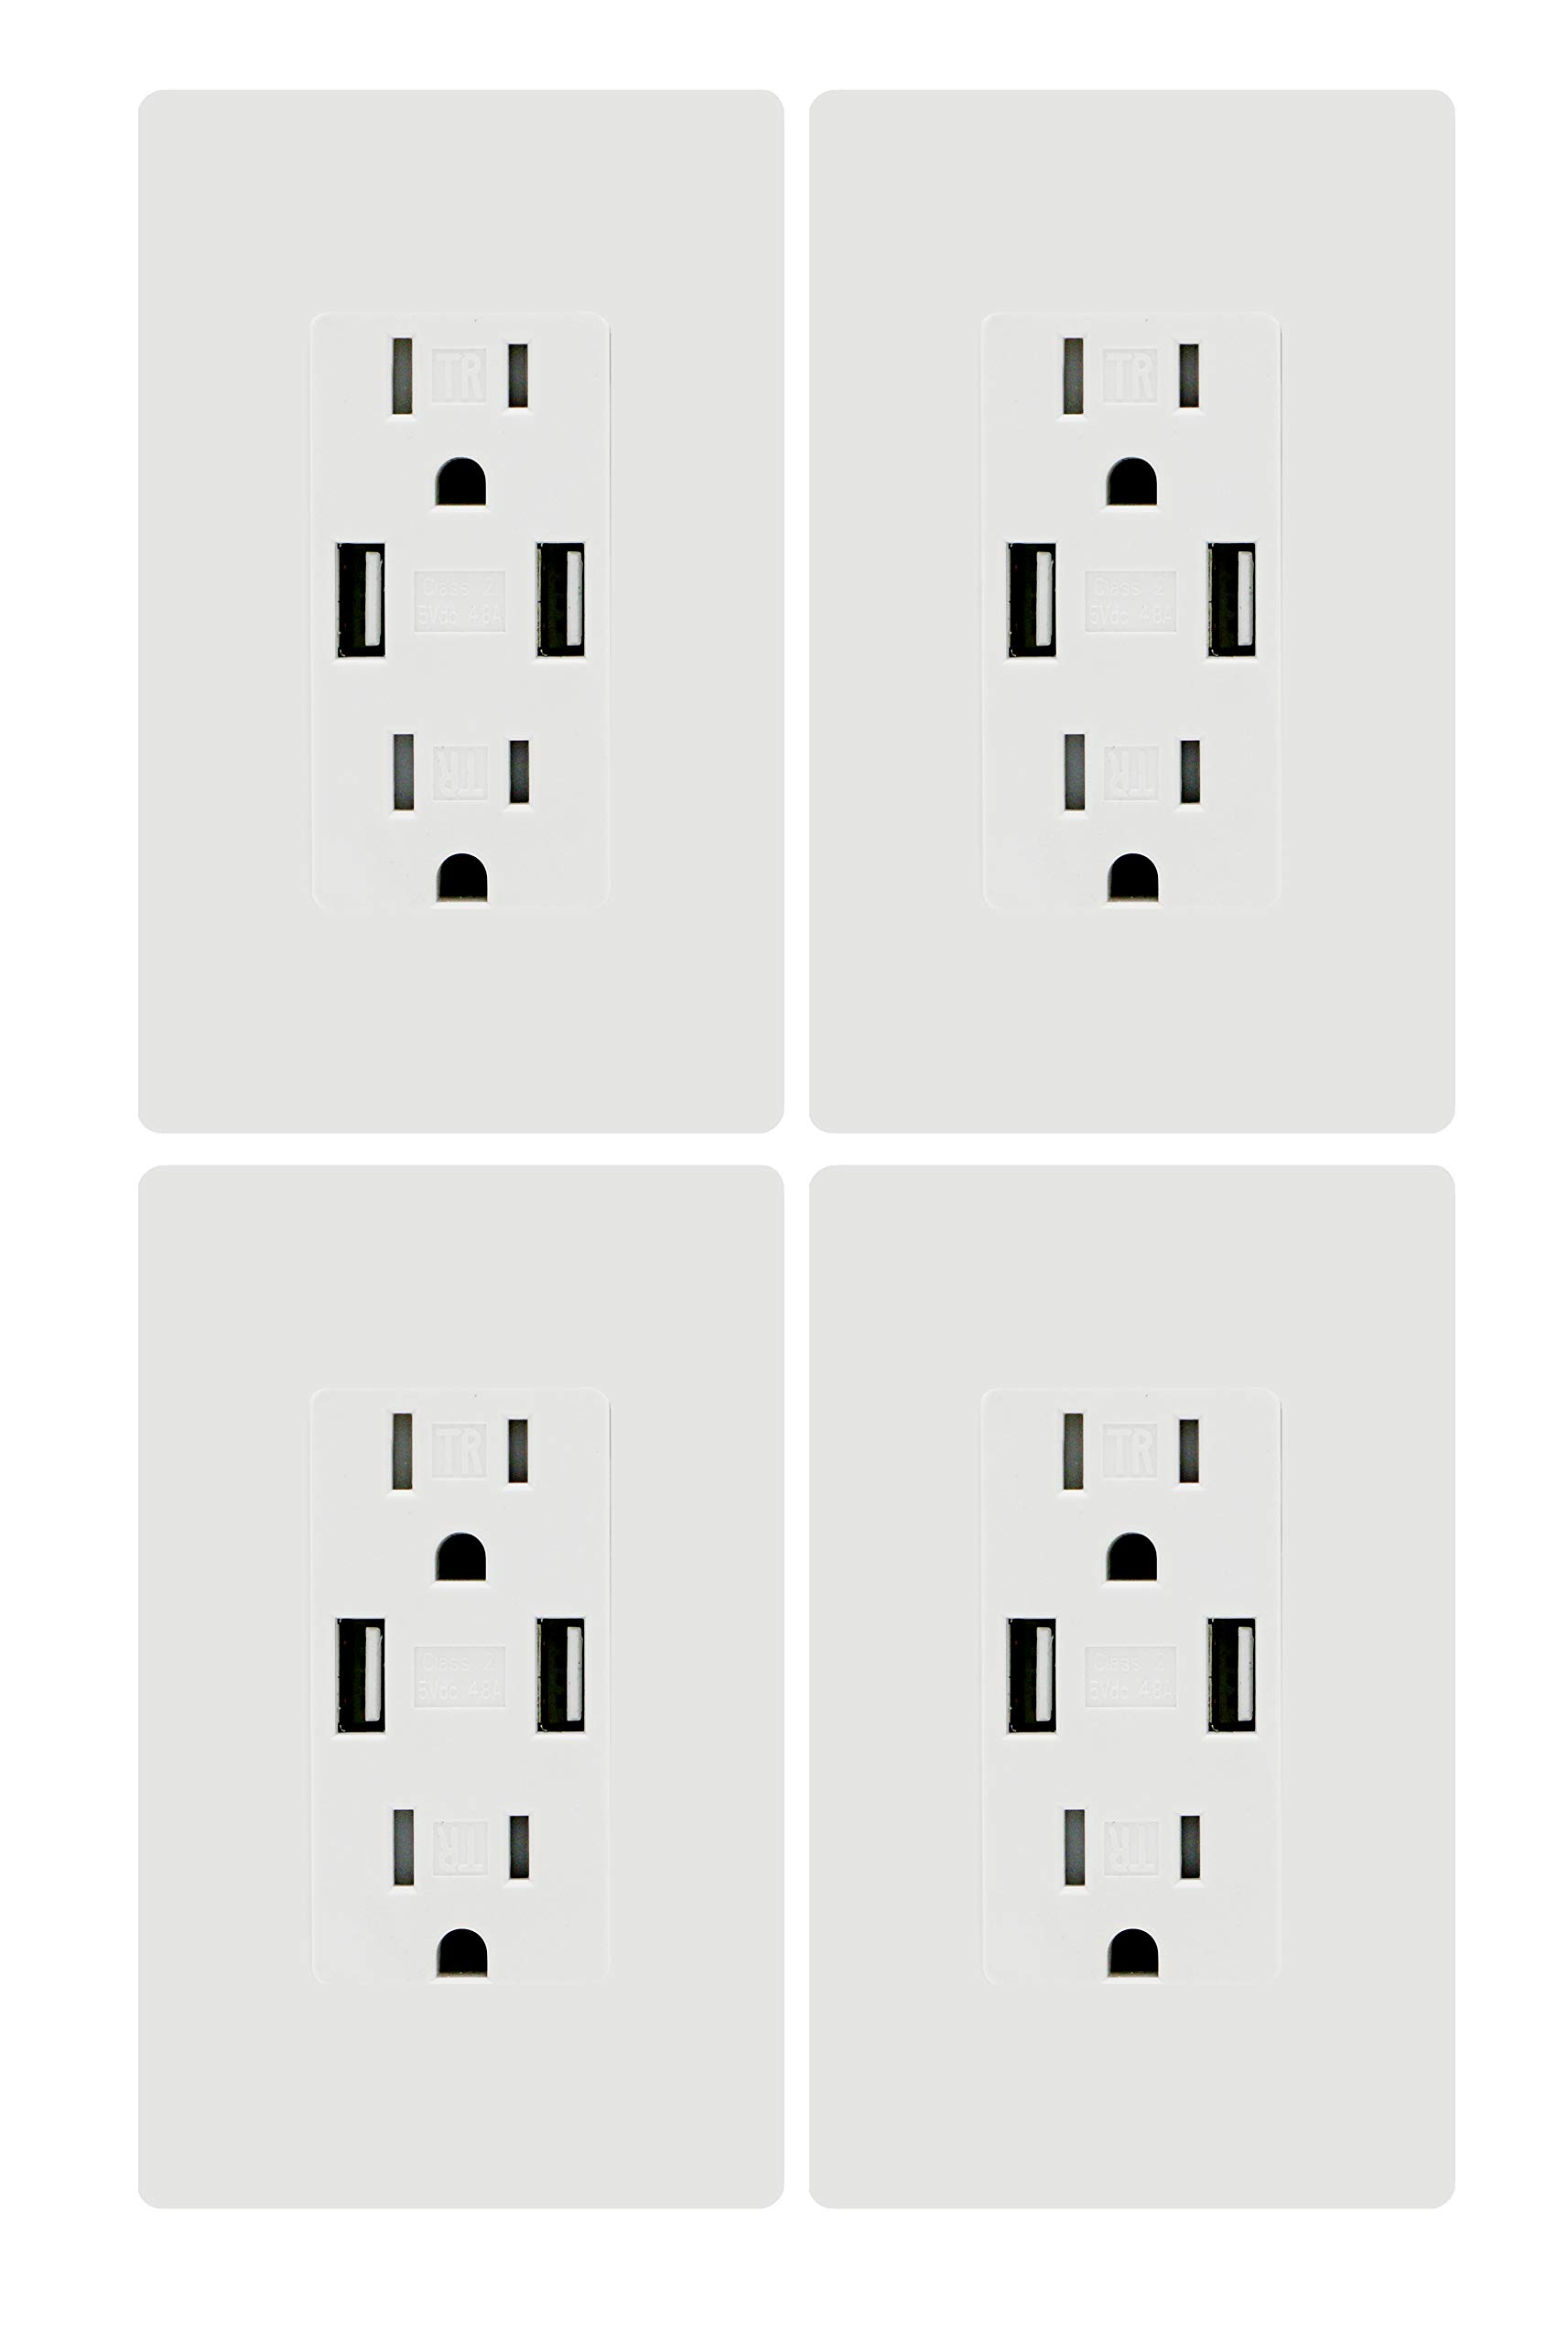 USB Charger Wall Outlet Dual High Speed Duplex Receptacle 15 Amp, Smart 4.8A Quick Charging Capability, Tamper Resistant Outlet Wall plate Included UL Listed White MICMI C48 (4.8A USB outlet 4pack)